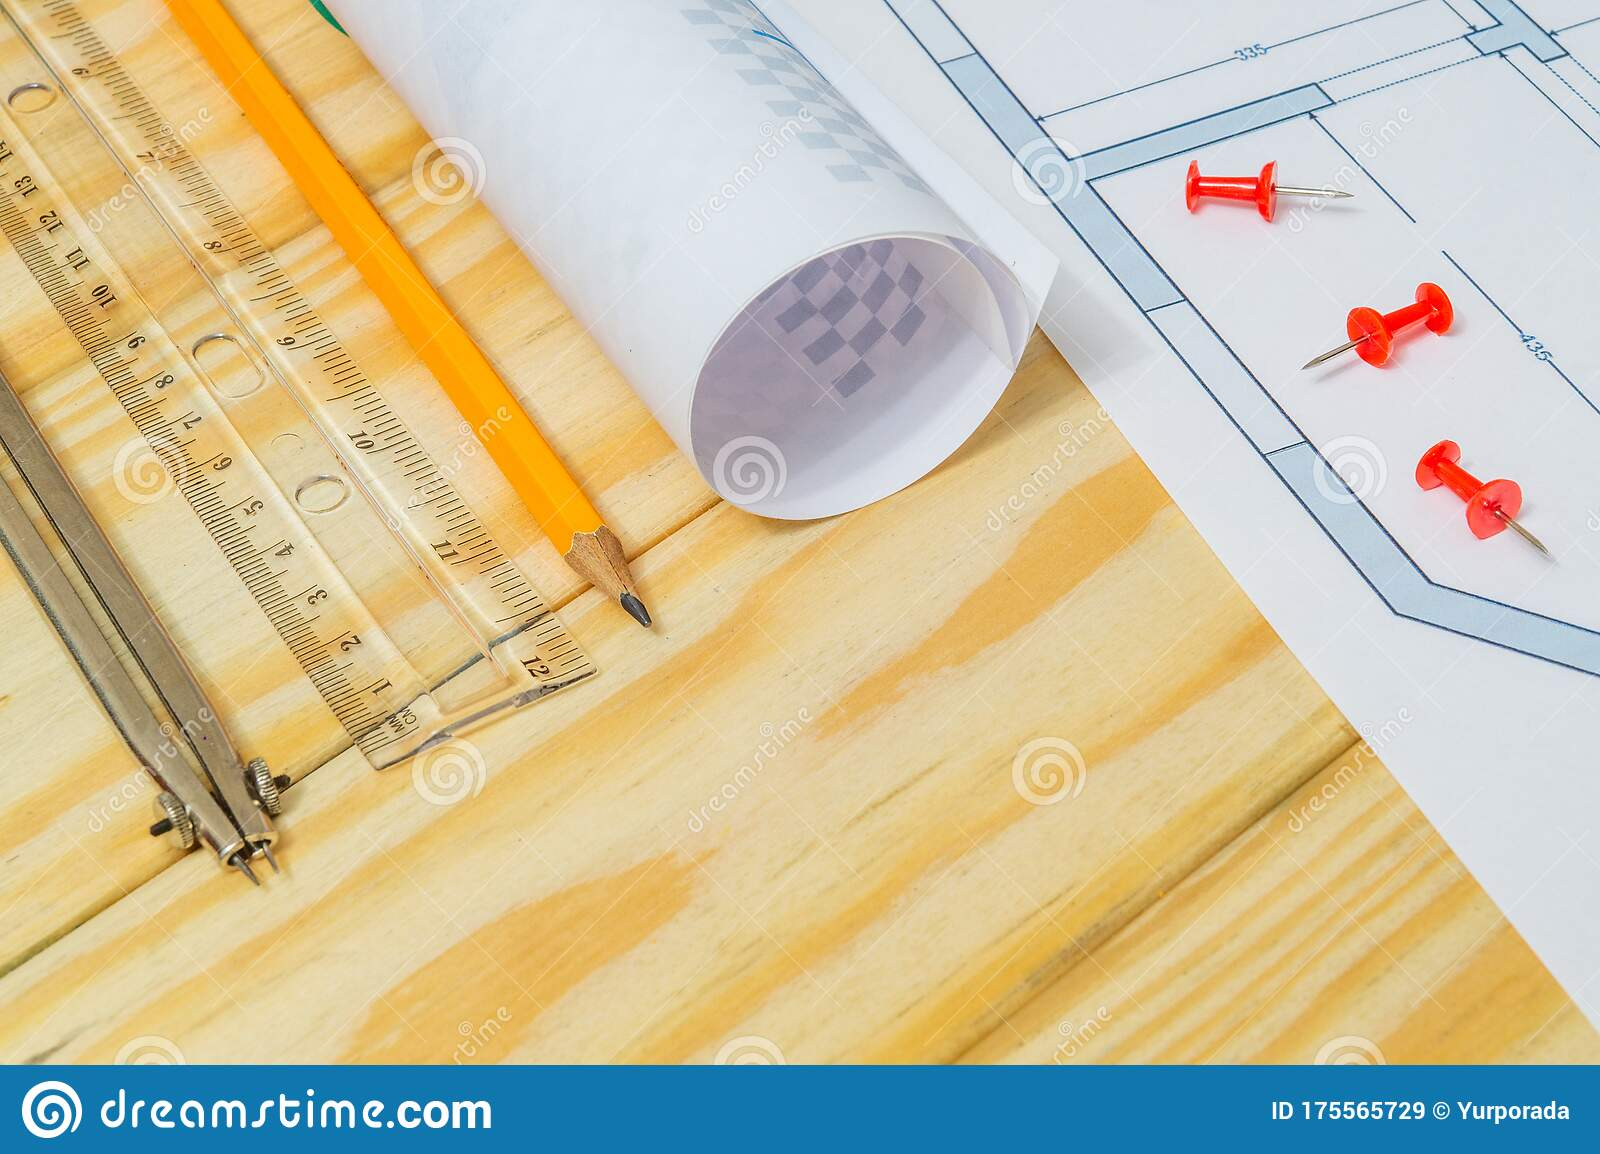 Rolled House Diagrams And Accessories For Drawing Lying On